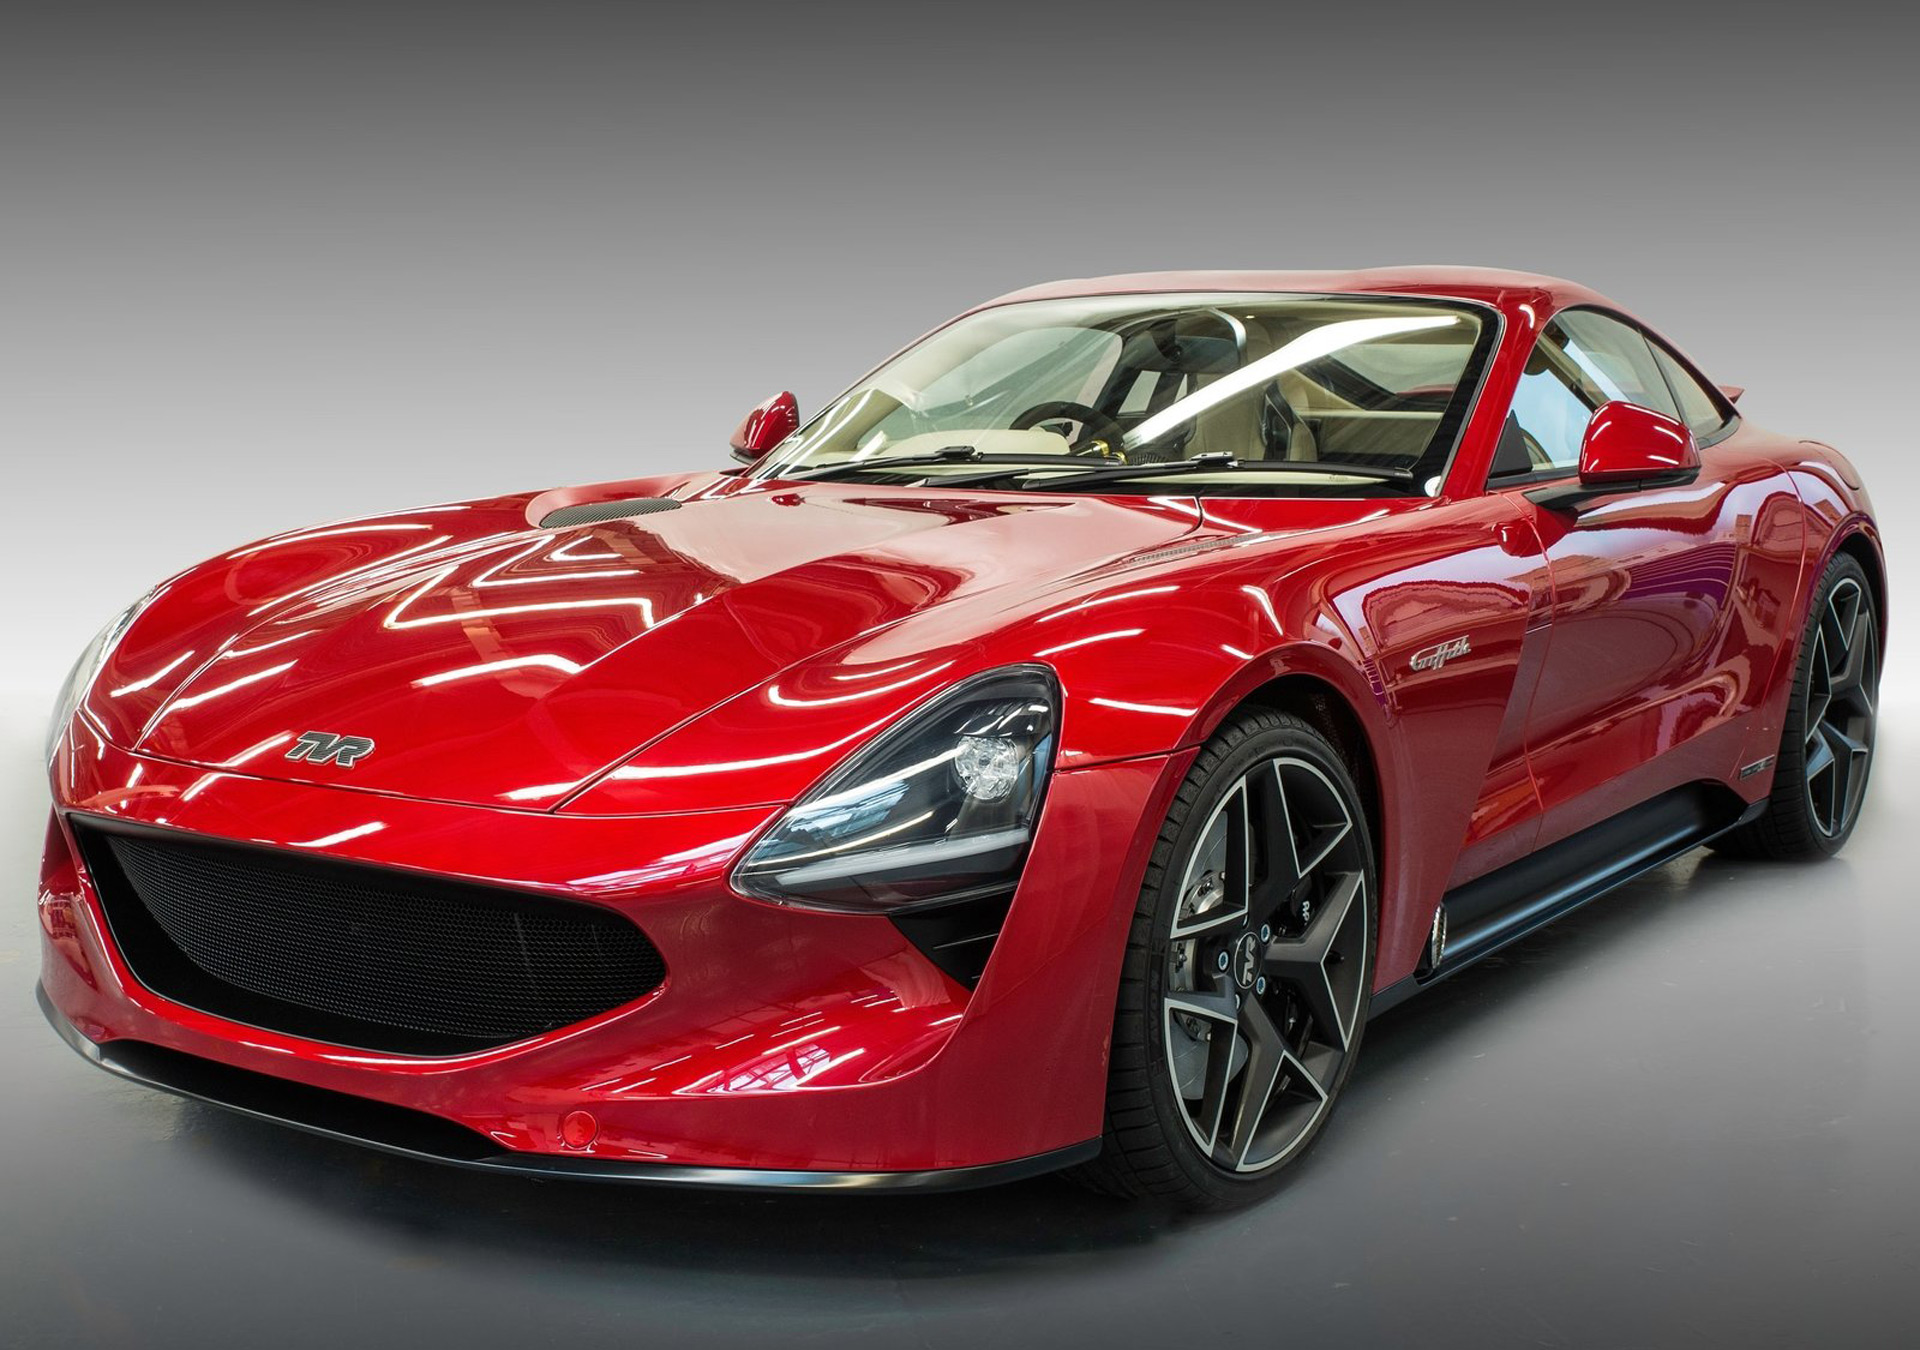 tvr returns with 500 horsepower griffith sports car. Black Bedroom Furniture Sets. Home Design Ideas